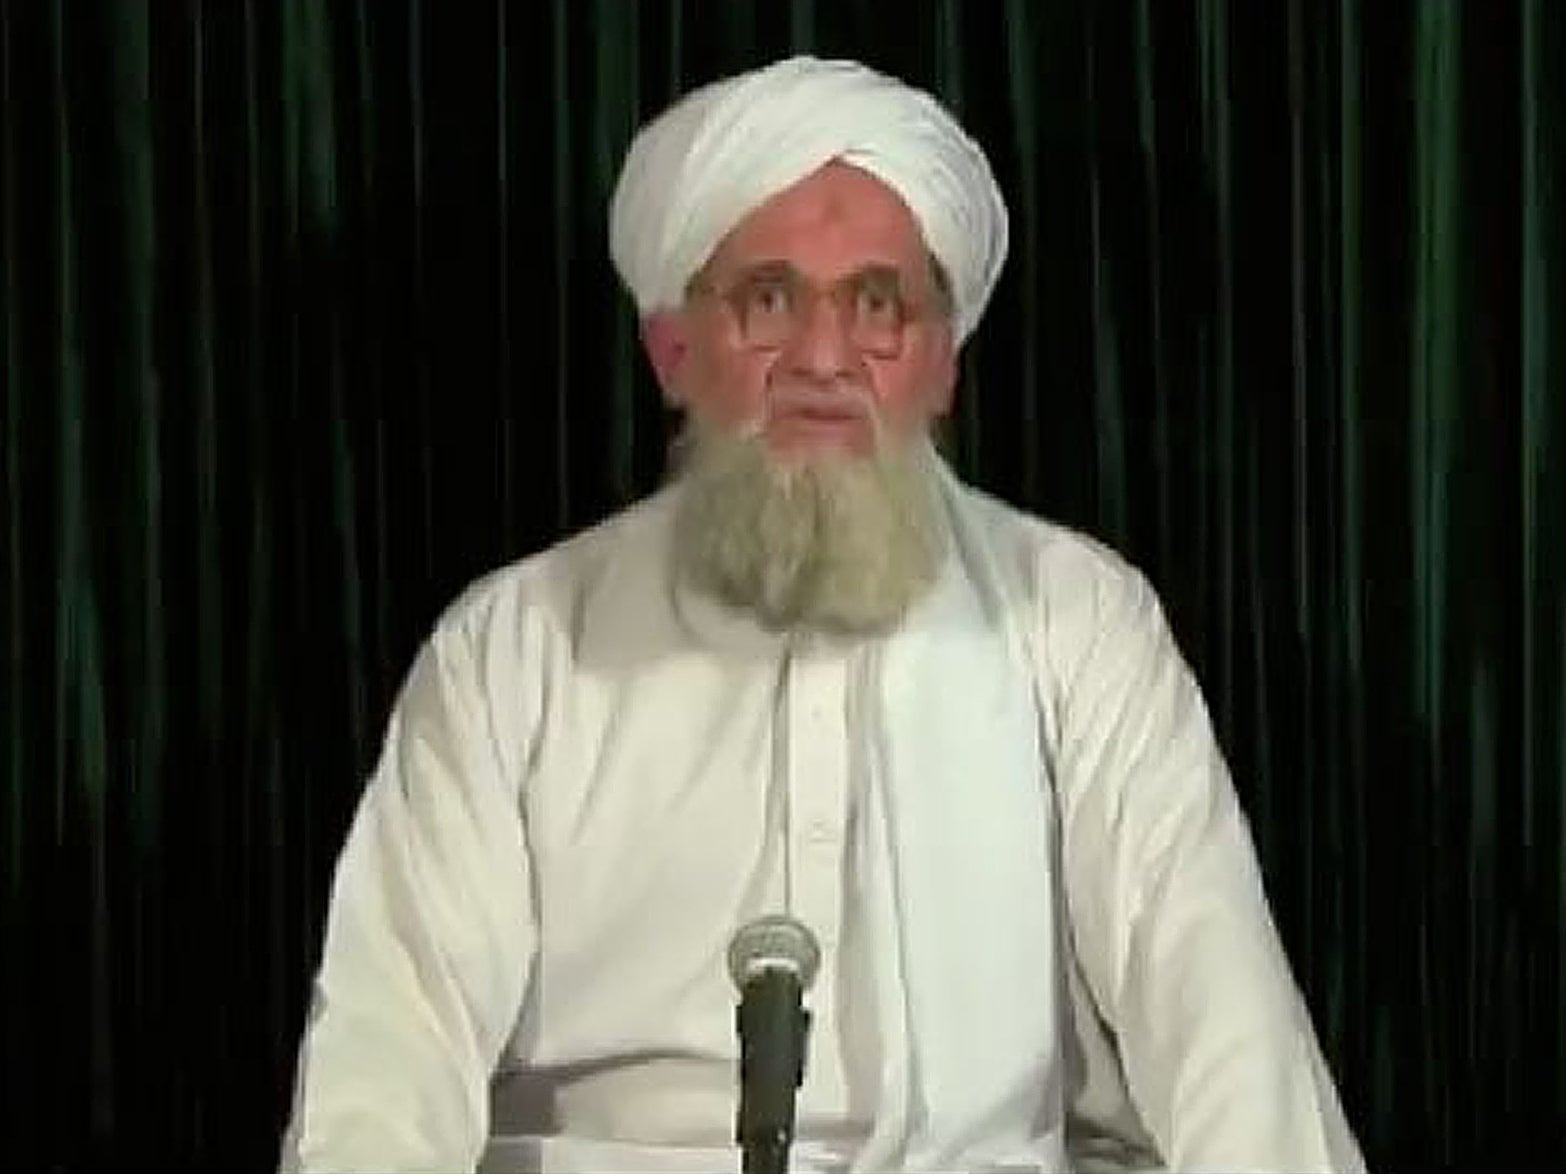 Al-Qaeda leader rumoured to be dead appears in video released on 9/11 anniversary